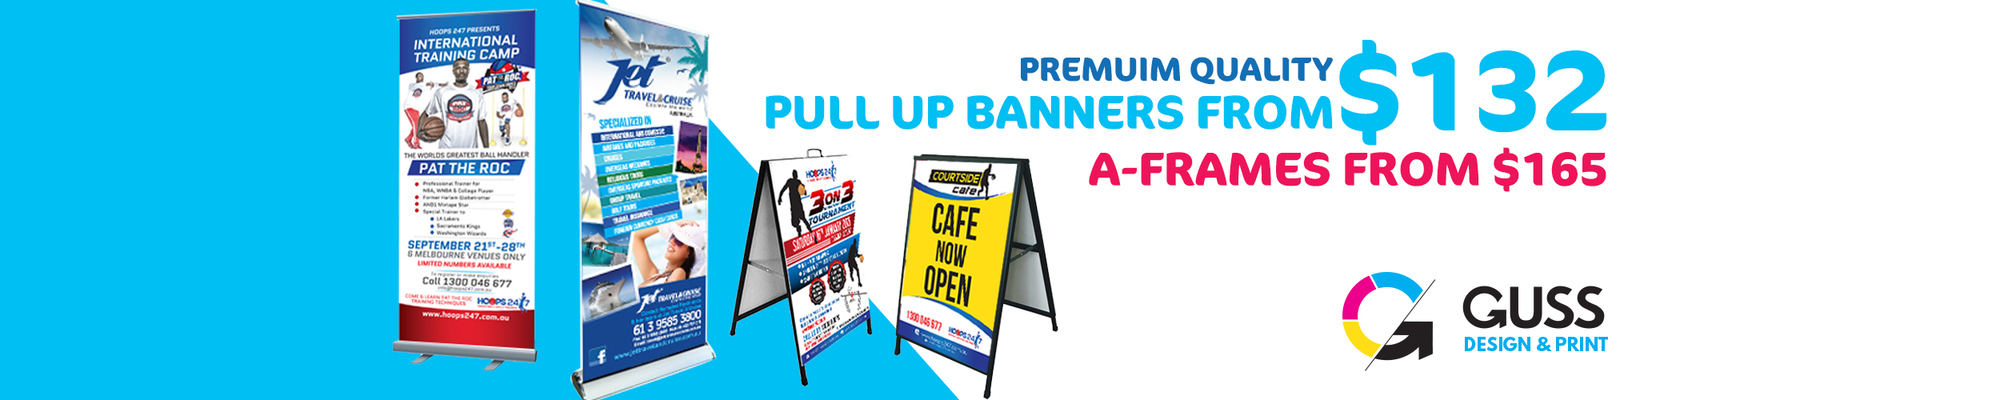 Pull up Banners  A-Frames